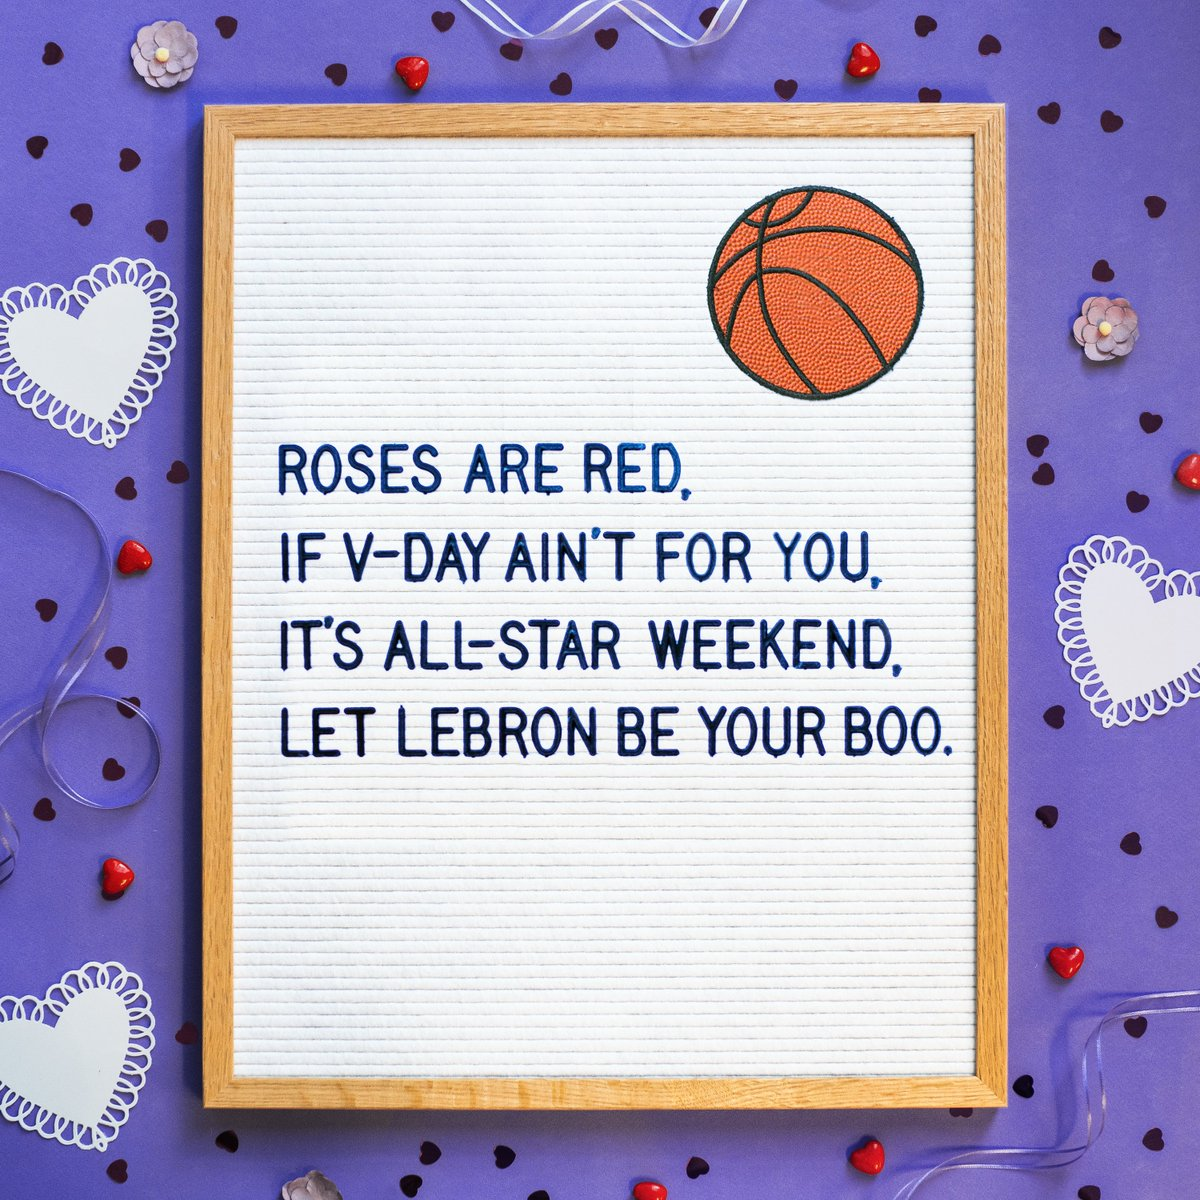 Spread love and throw down massive dunks this #ValentinesDay! 🏀❤️ #ValentinesDayMemes